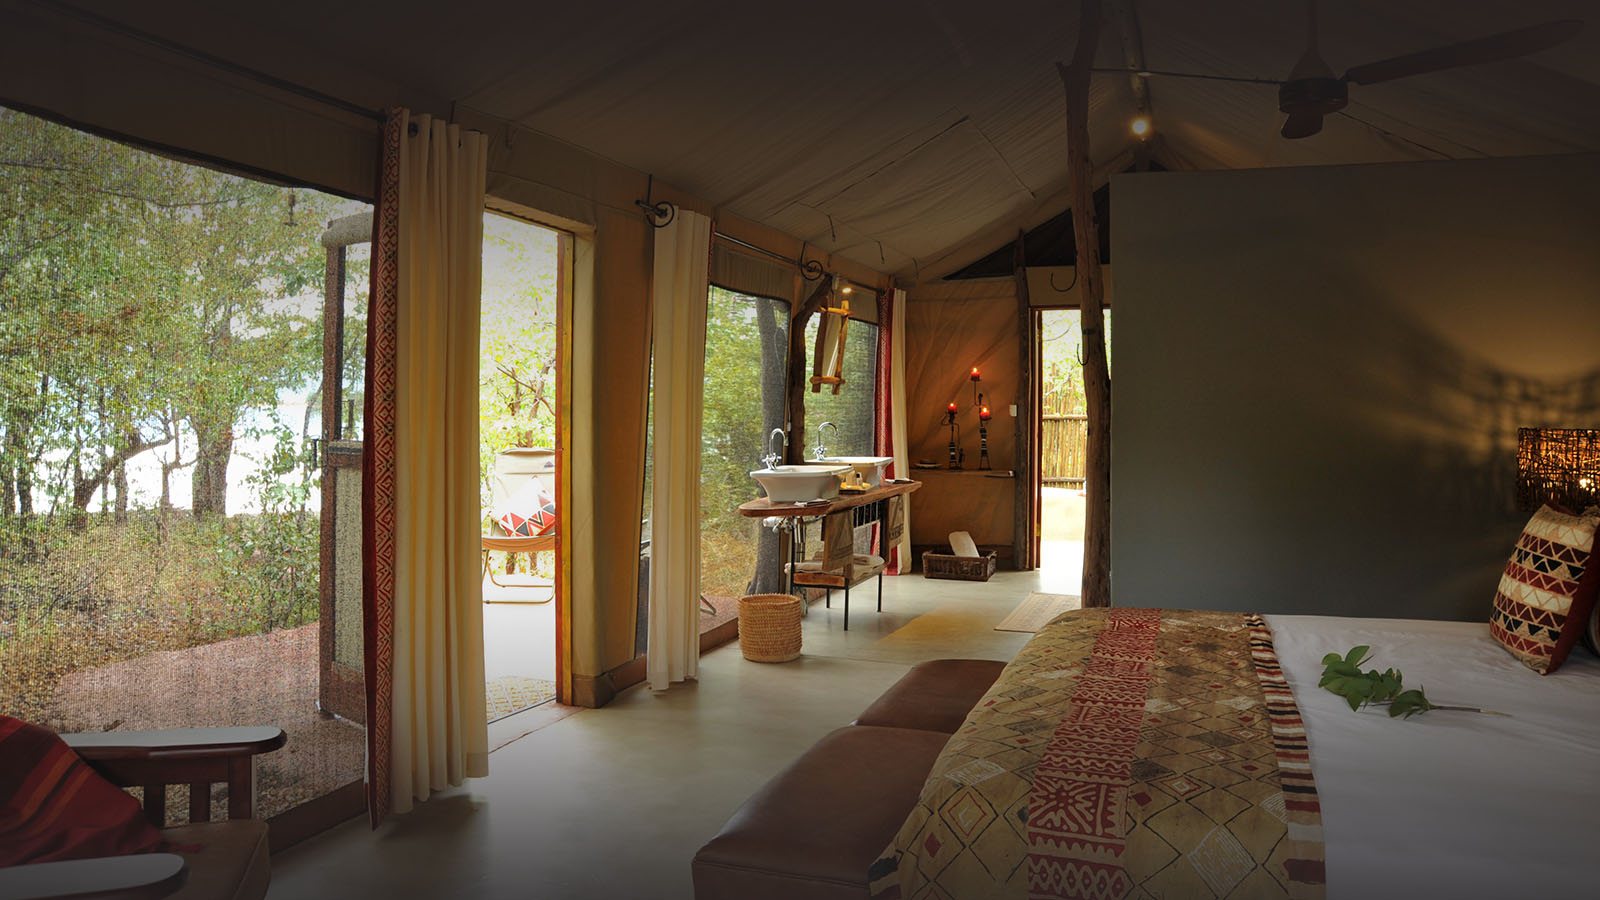 changa safari camp lake-kariba-zimbabwe-deluxe-tent-room